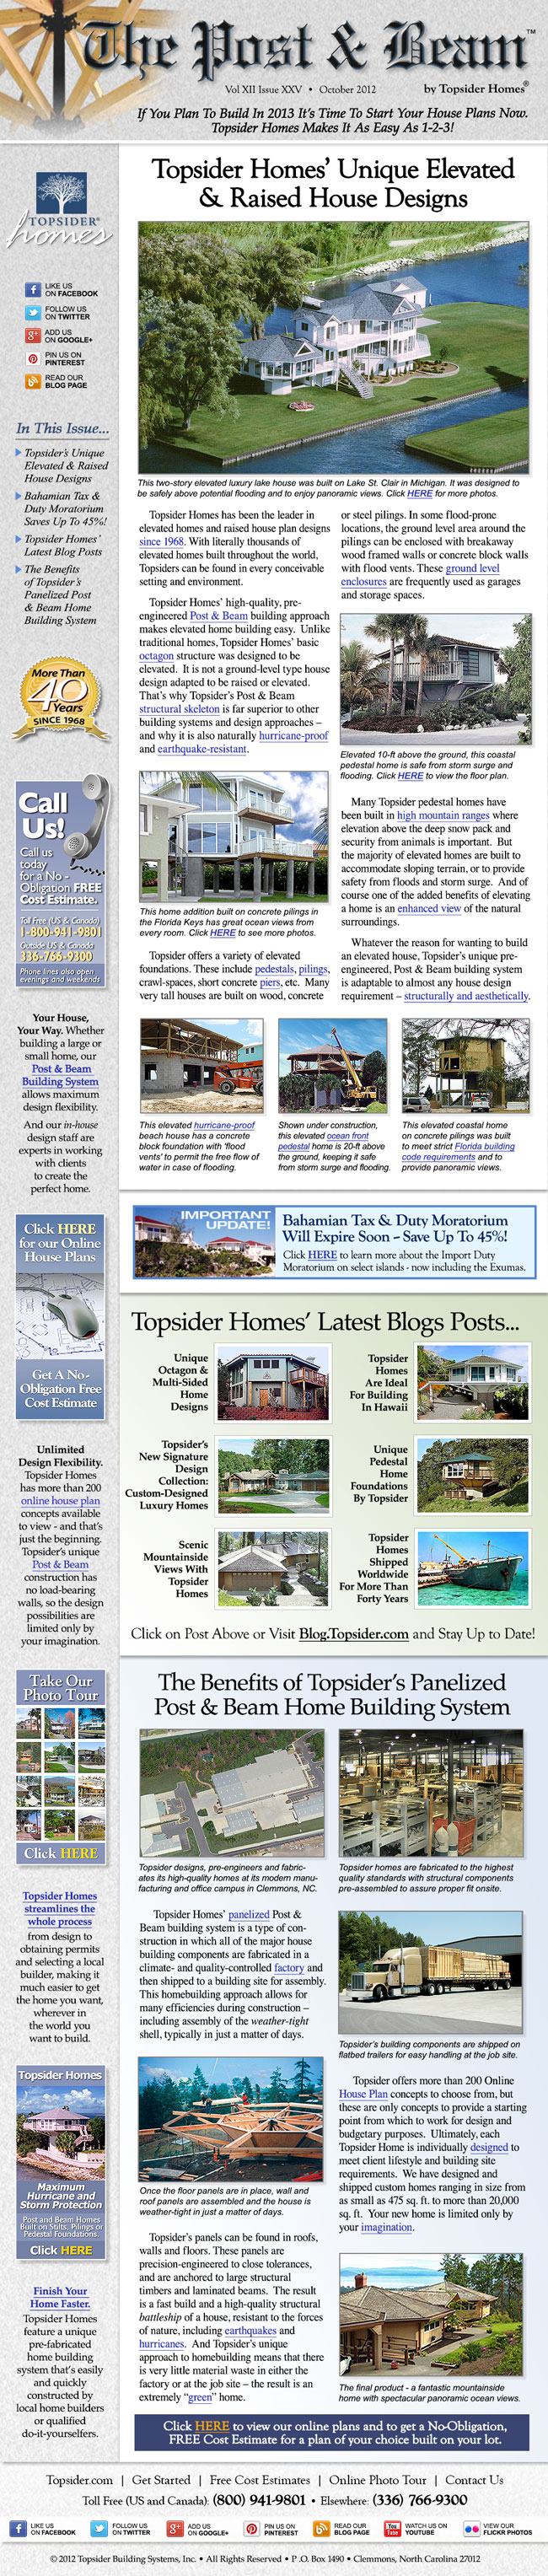 Topsider Homes October 2012 eNewsletter